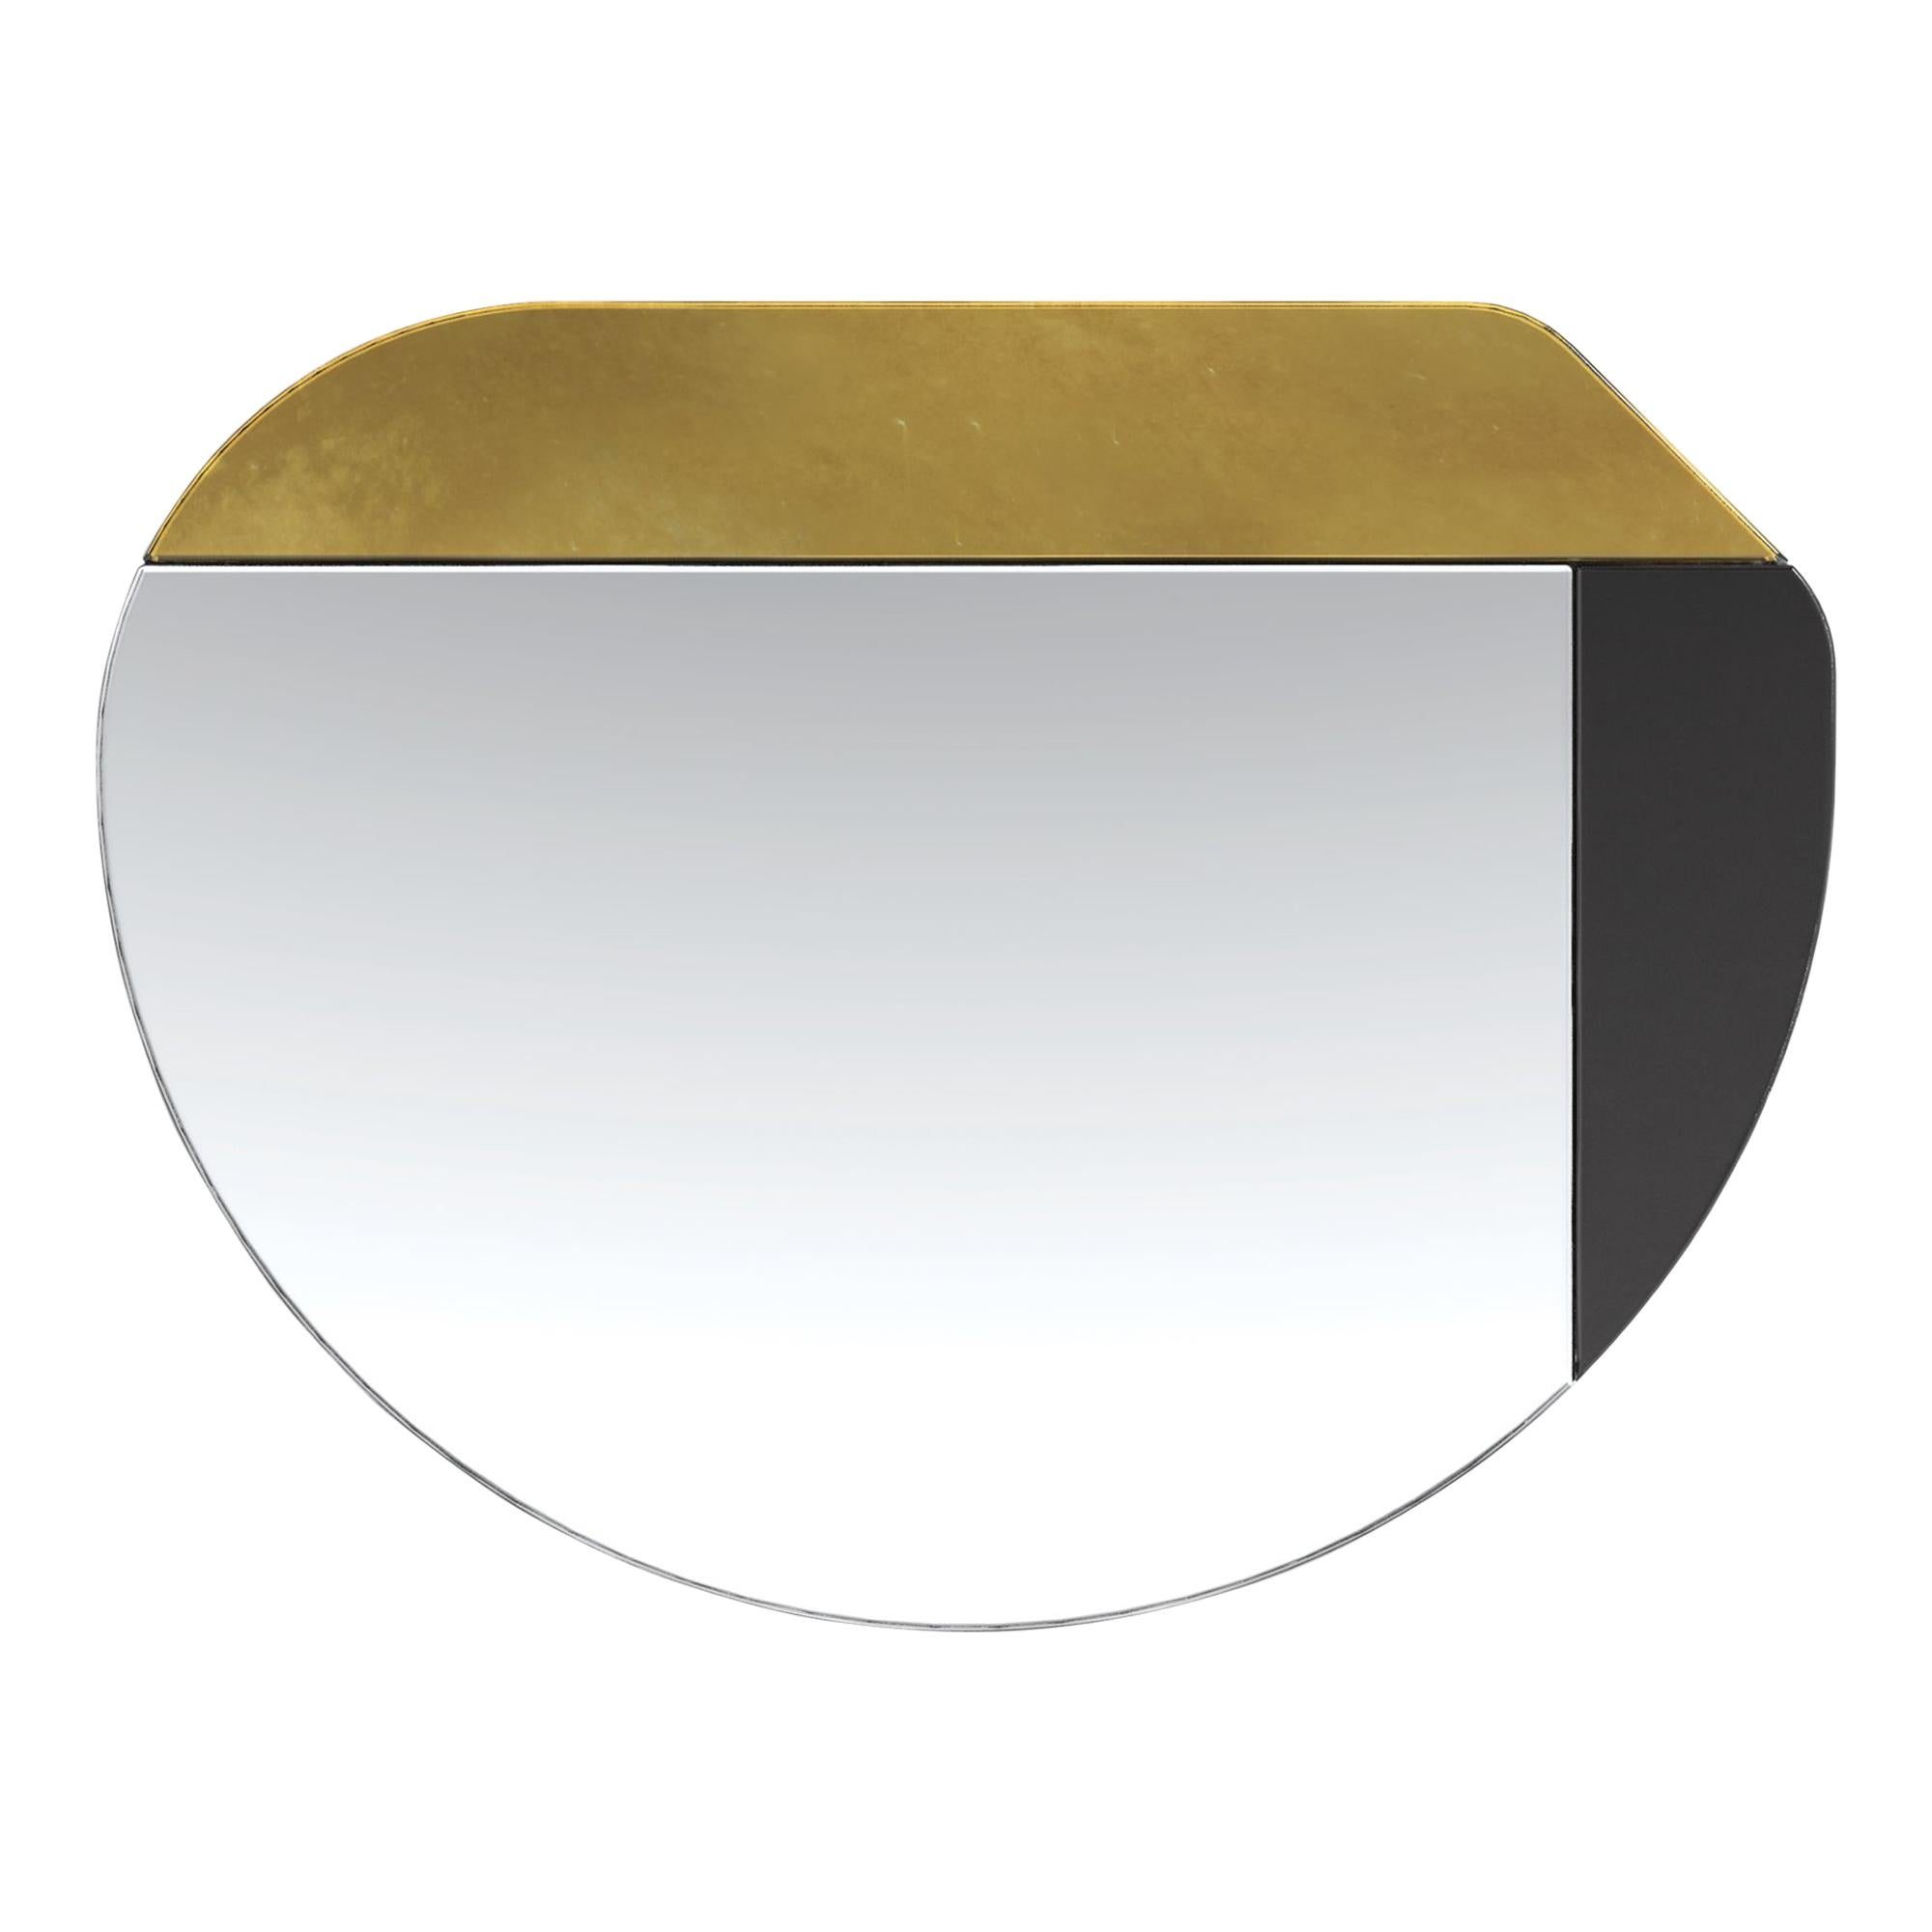 Gold and Black WG.C1.E Hand-Crafted Wall Mirror